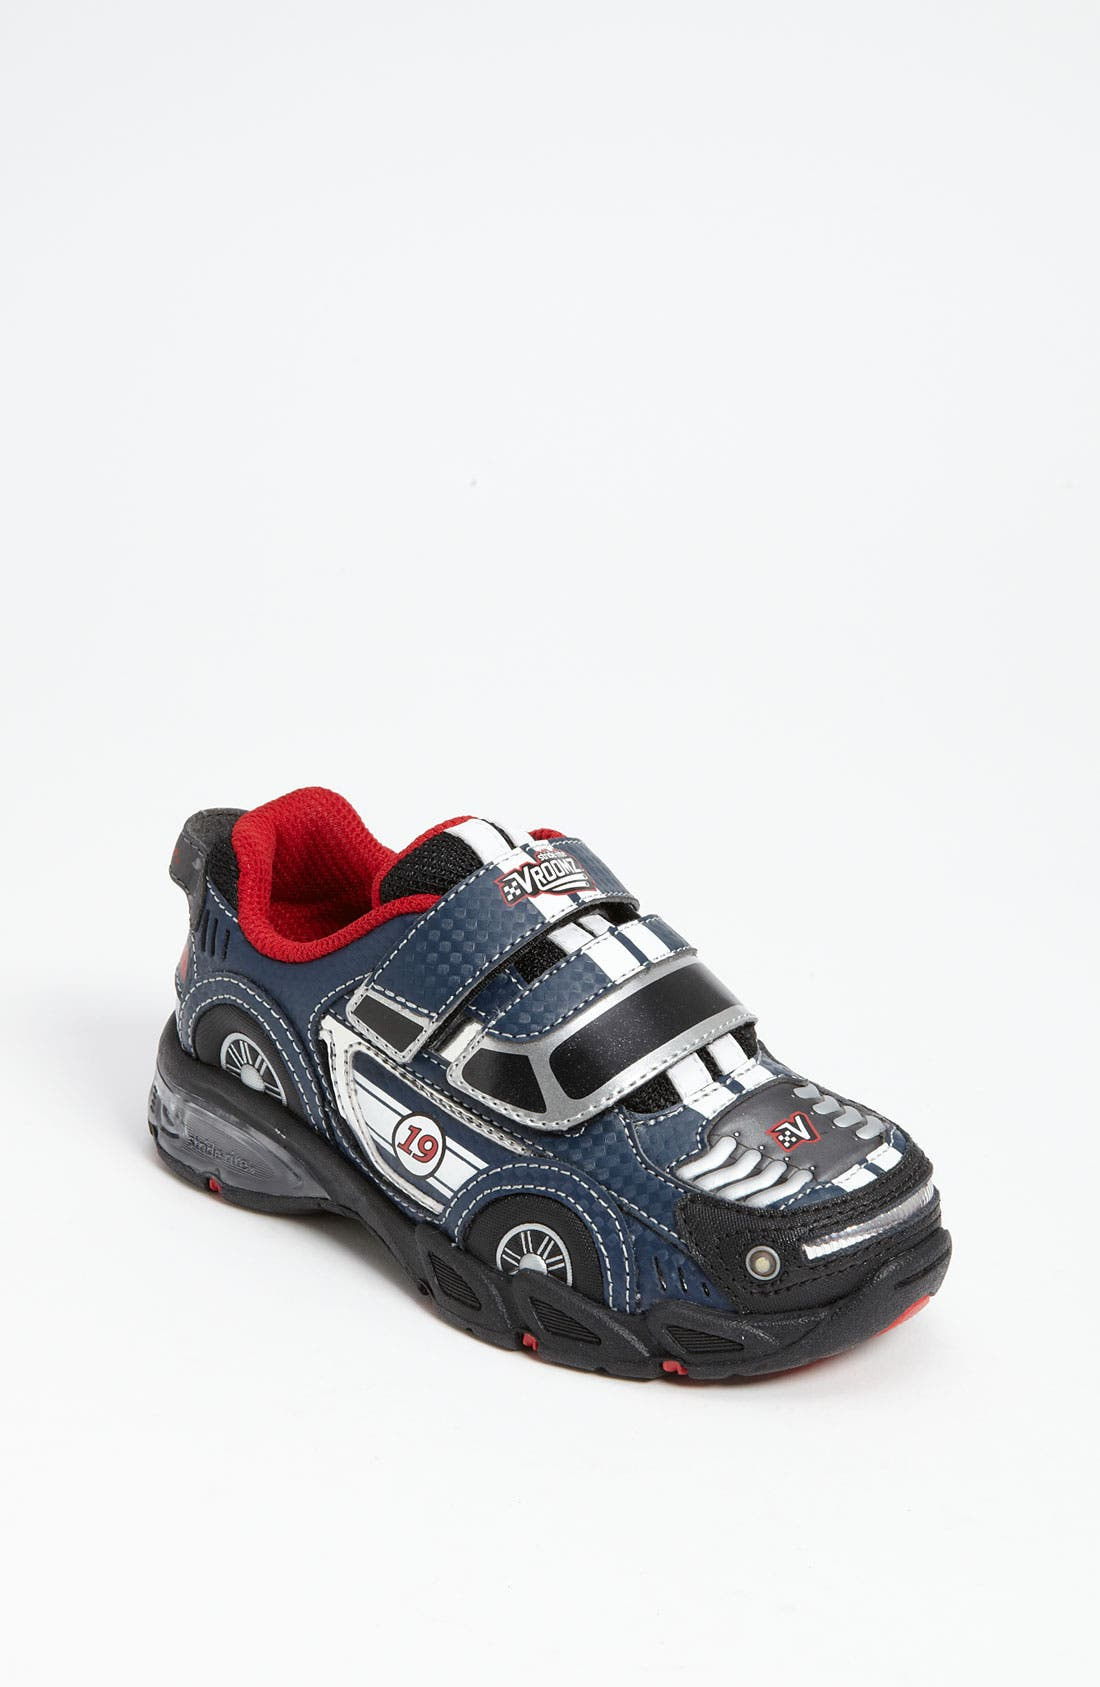 Alternate Image 1 Selected - Stride Rite 'Vroomz' Sneaker (Walker & Toddler)